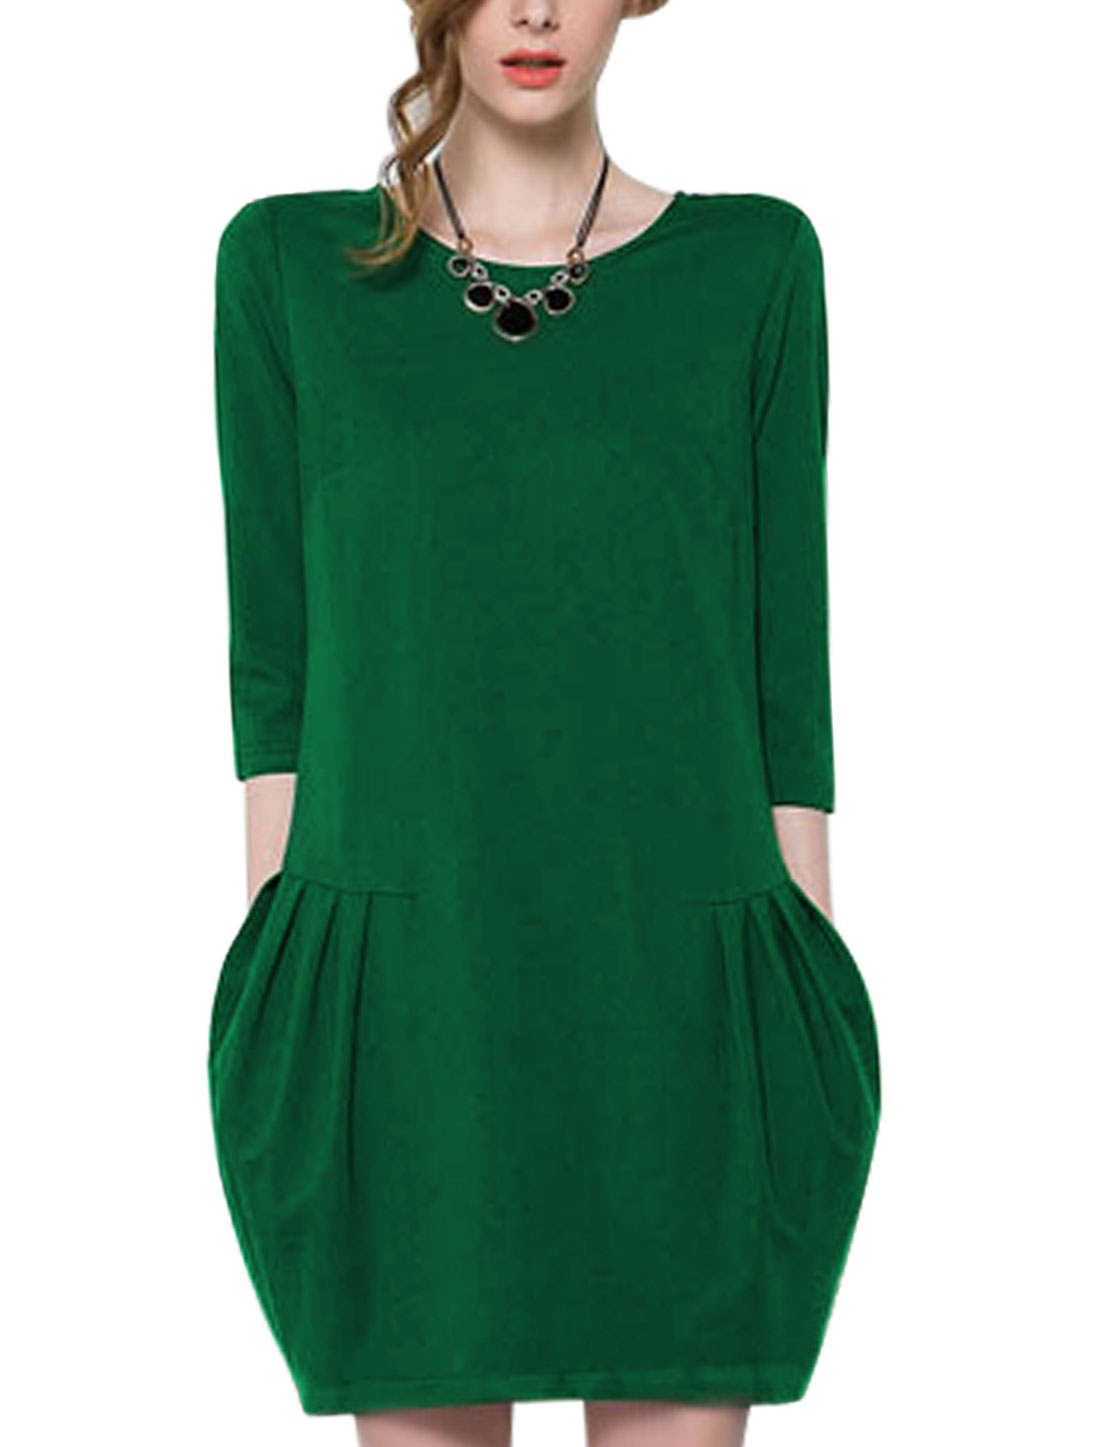 Ladies Dusty Green Zip Up Back Ruched Detail Unlined Slipover Dress M